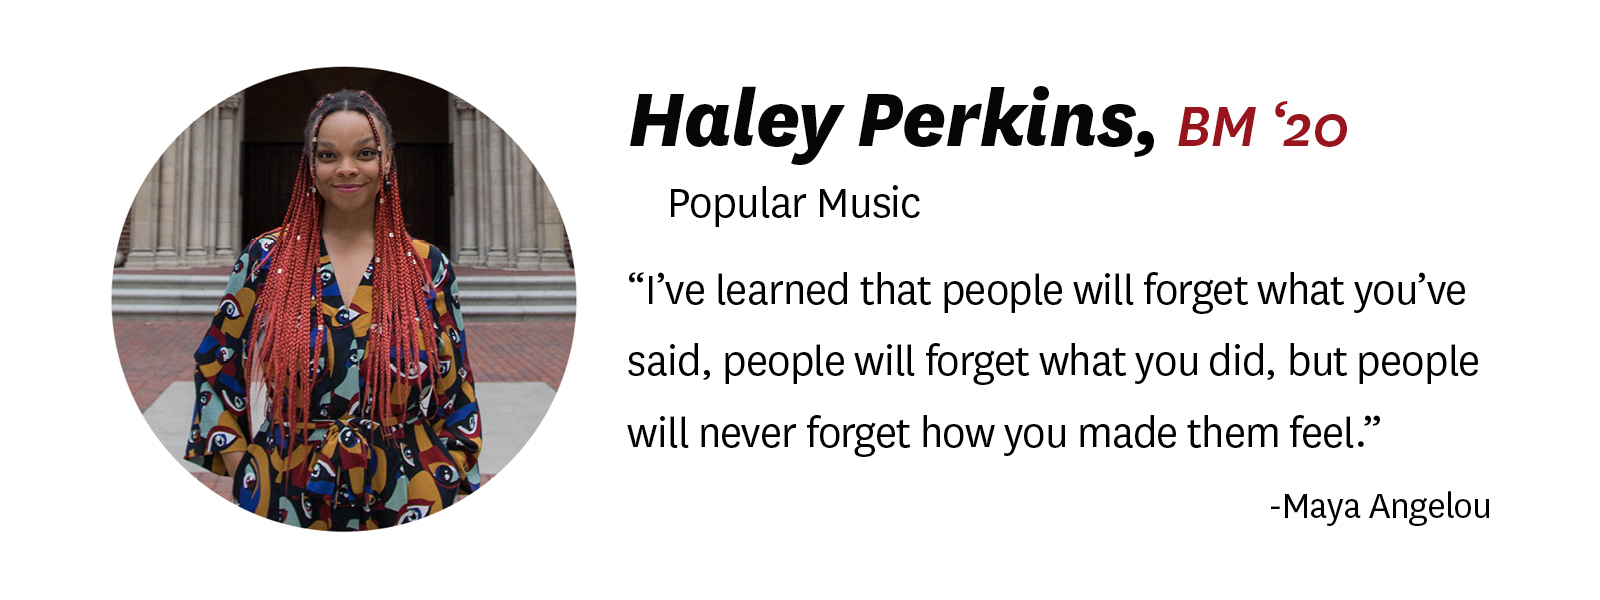 "Photo of Haley Perkins with her ""senior quote."" Description of text: ""Haley Perkins, BM '20, Popular Music. Quote: ""I've learned that people will forget what you've said, people will forget what you did, but people will never forget how you made them feel."" by Maya Angelou"